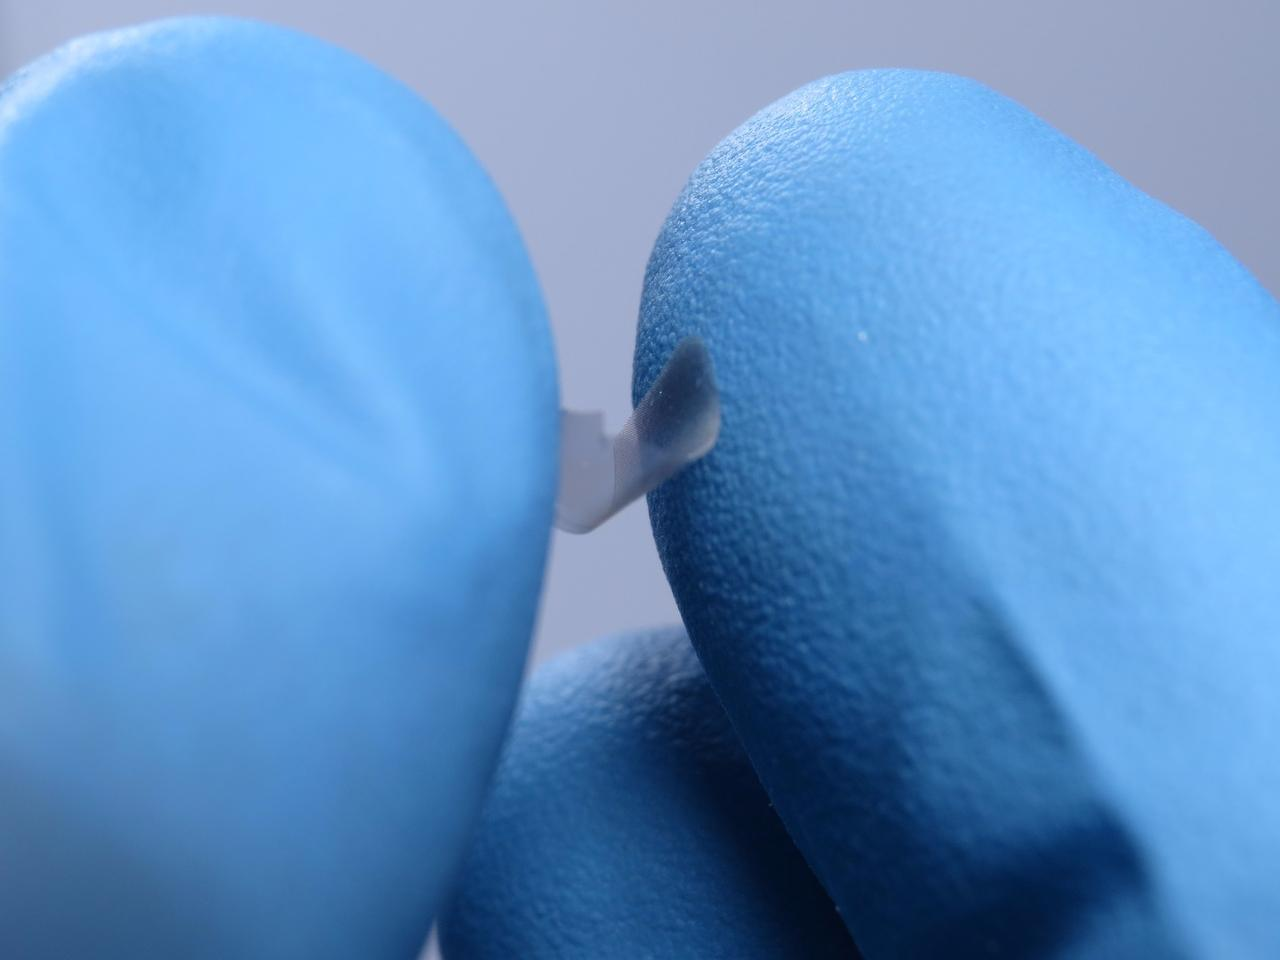 These ultra-thin plates are able to retain their shape after being bent and squeezed by a human hand